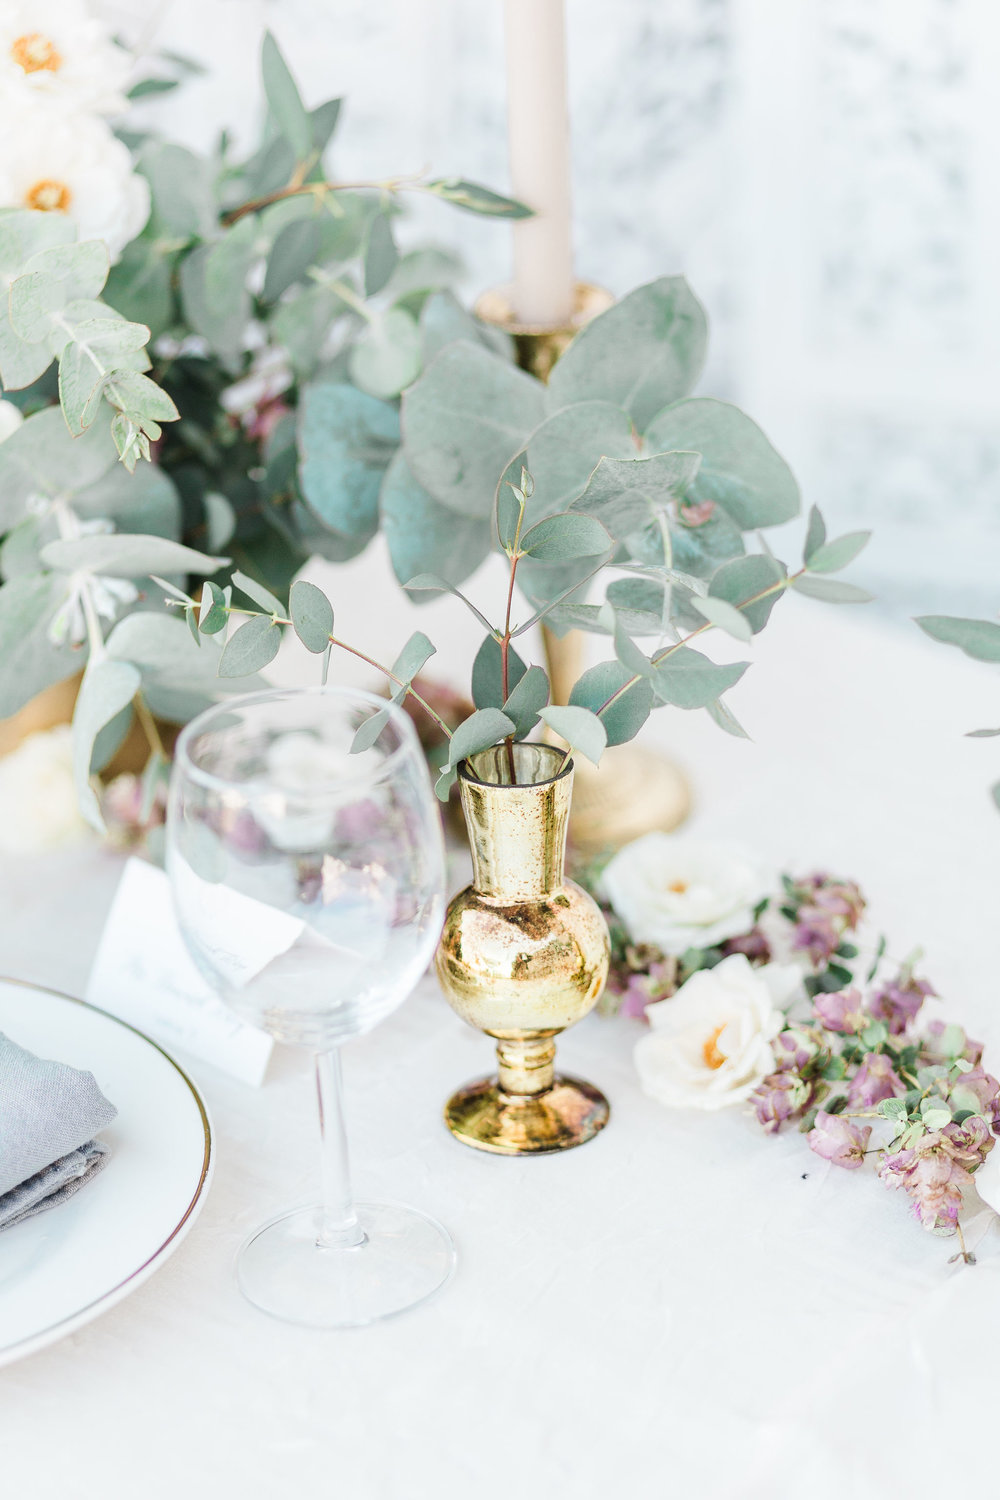 Georgia-Ruth-Photography-Flat-Lays-Table-Details-106.jpg